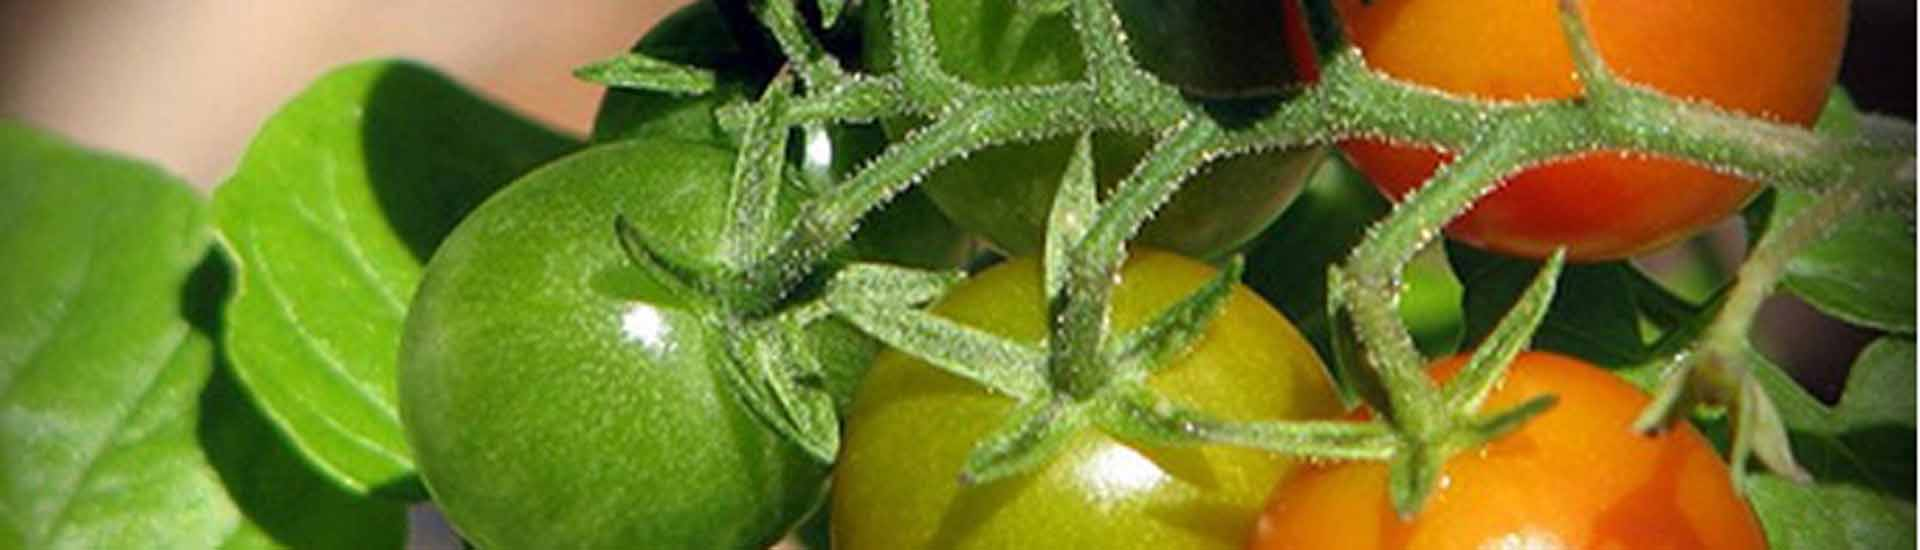 Tips For Growing Tomatoes Sustainable Gardening Australia